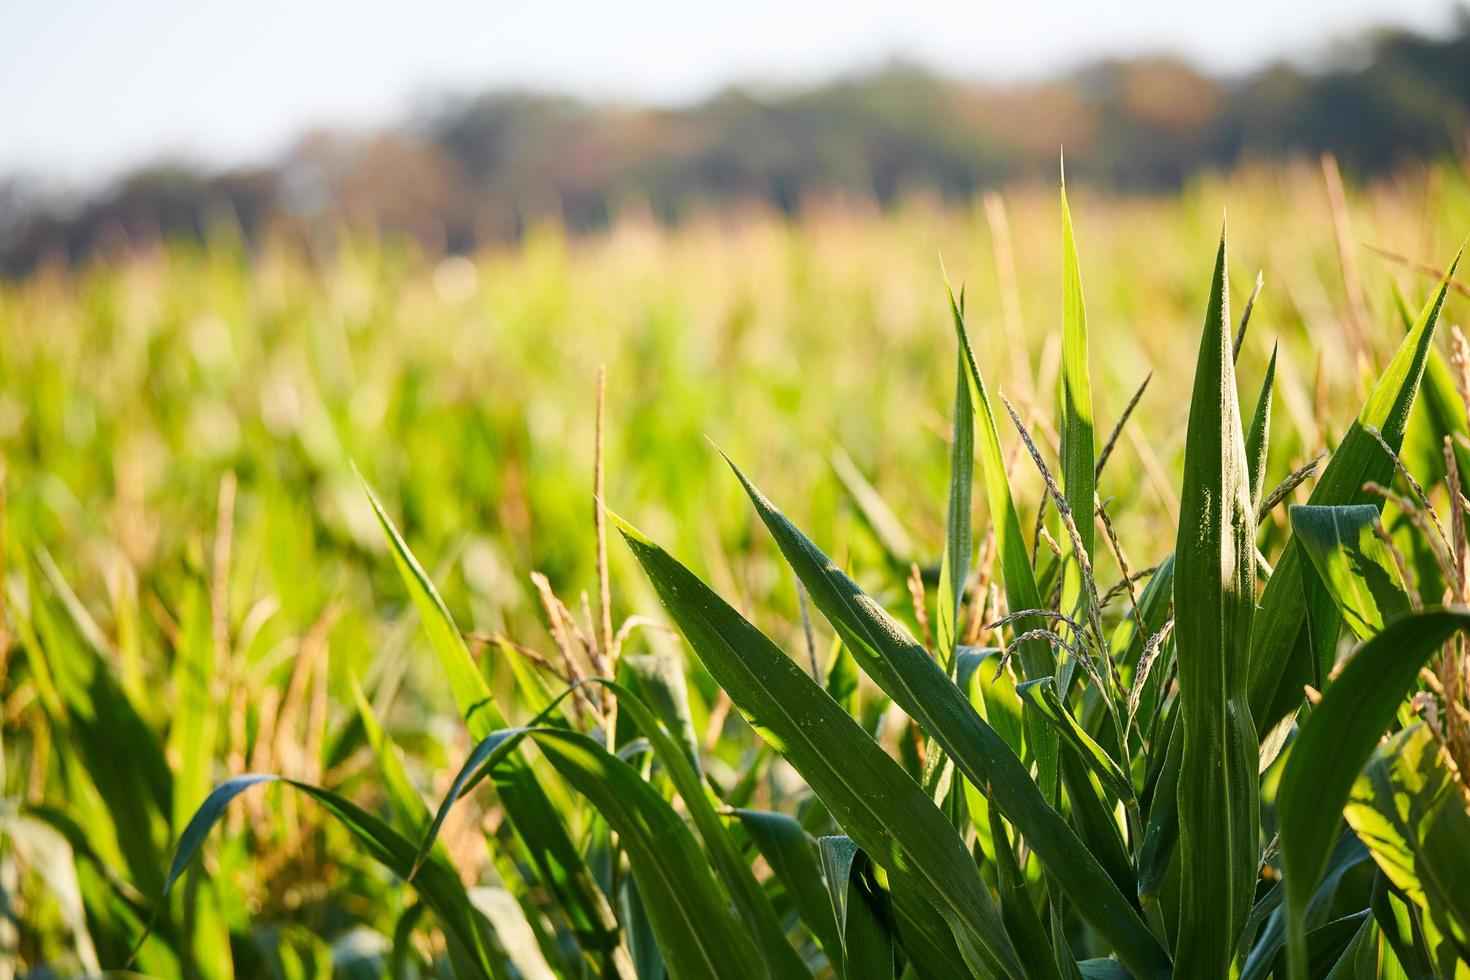 Green wheat fields during daytime photo